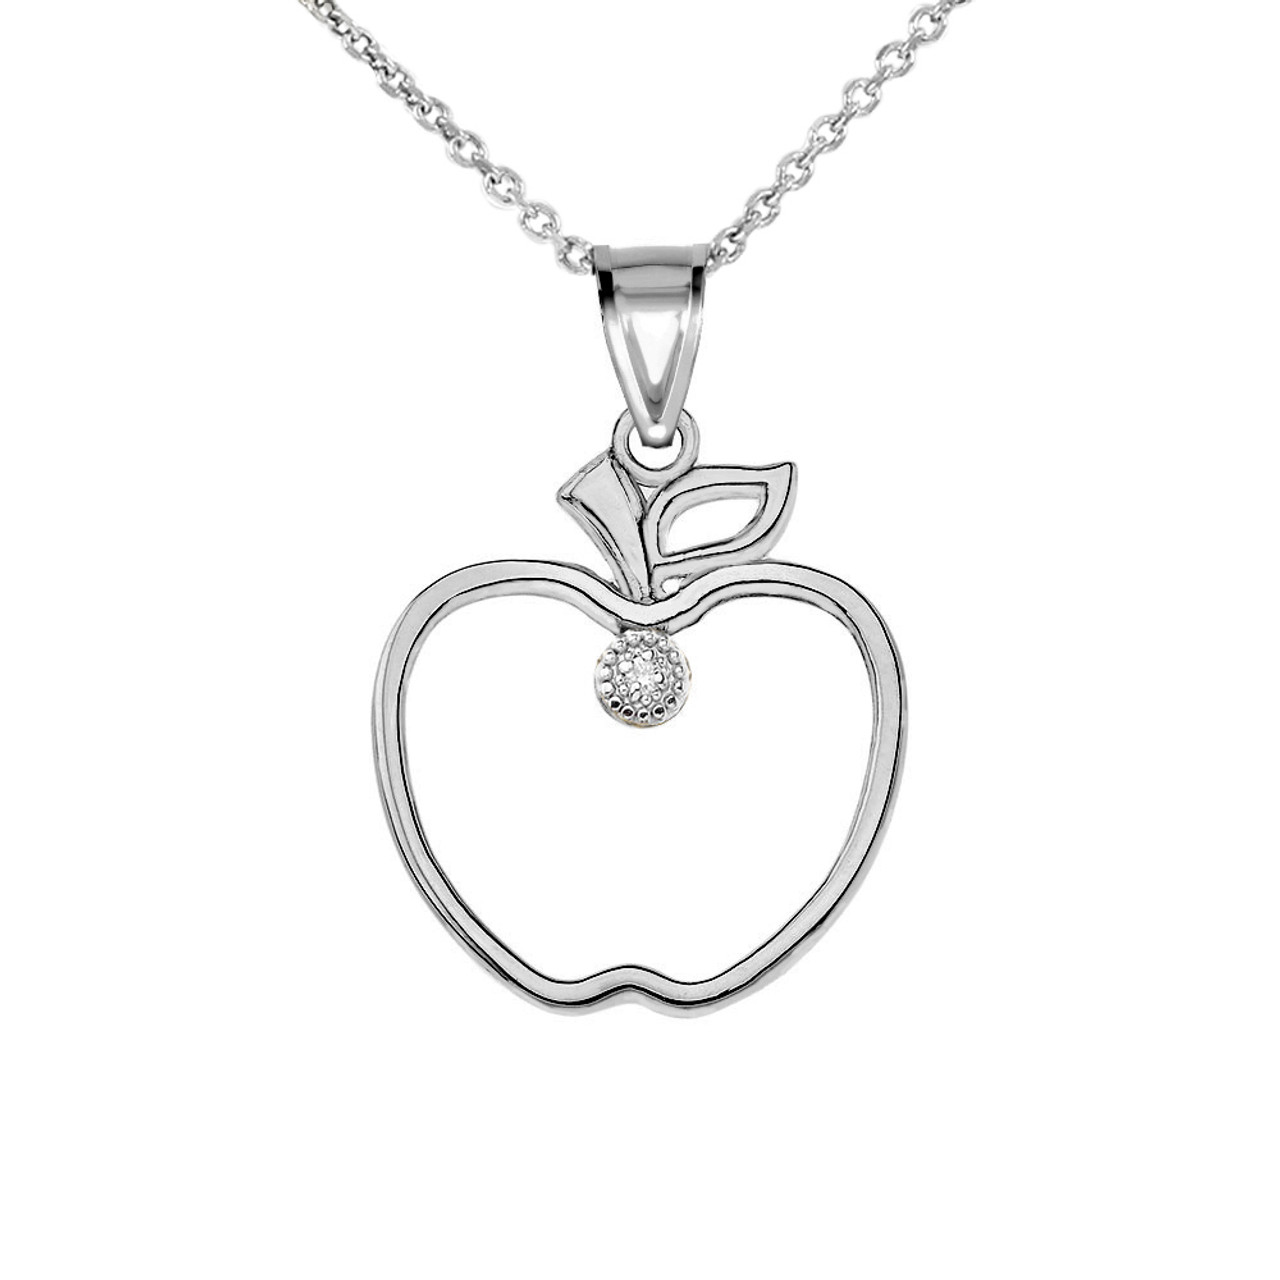 Moon /& Heart Outline Necklace Highly Polished Sterling Silver Star